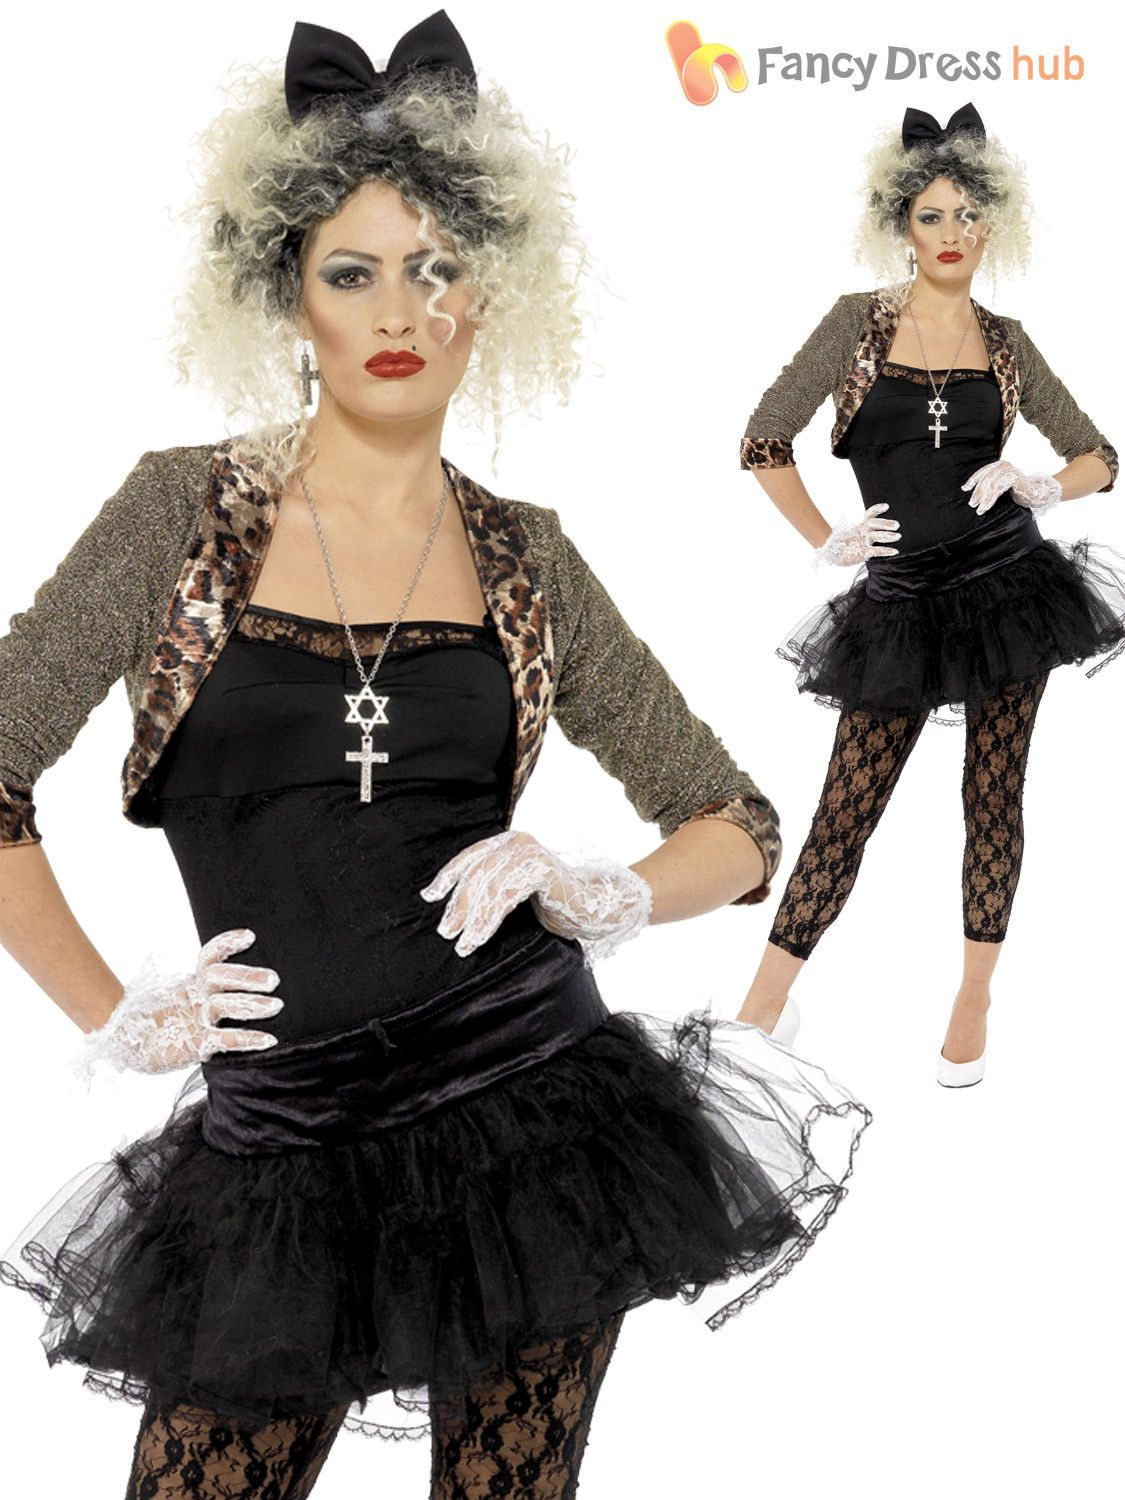 ed7cb0fce7 Ladies 80s Fancy Dress Pop Star Costume 1980s Wild Child Womens Hen ...